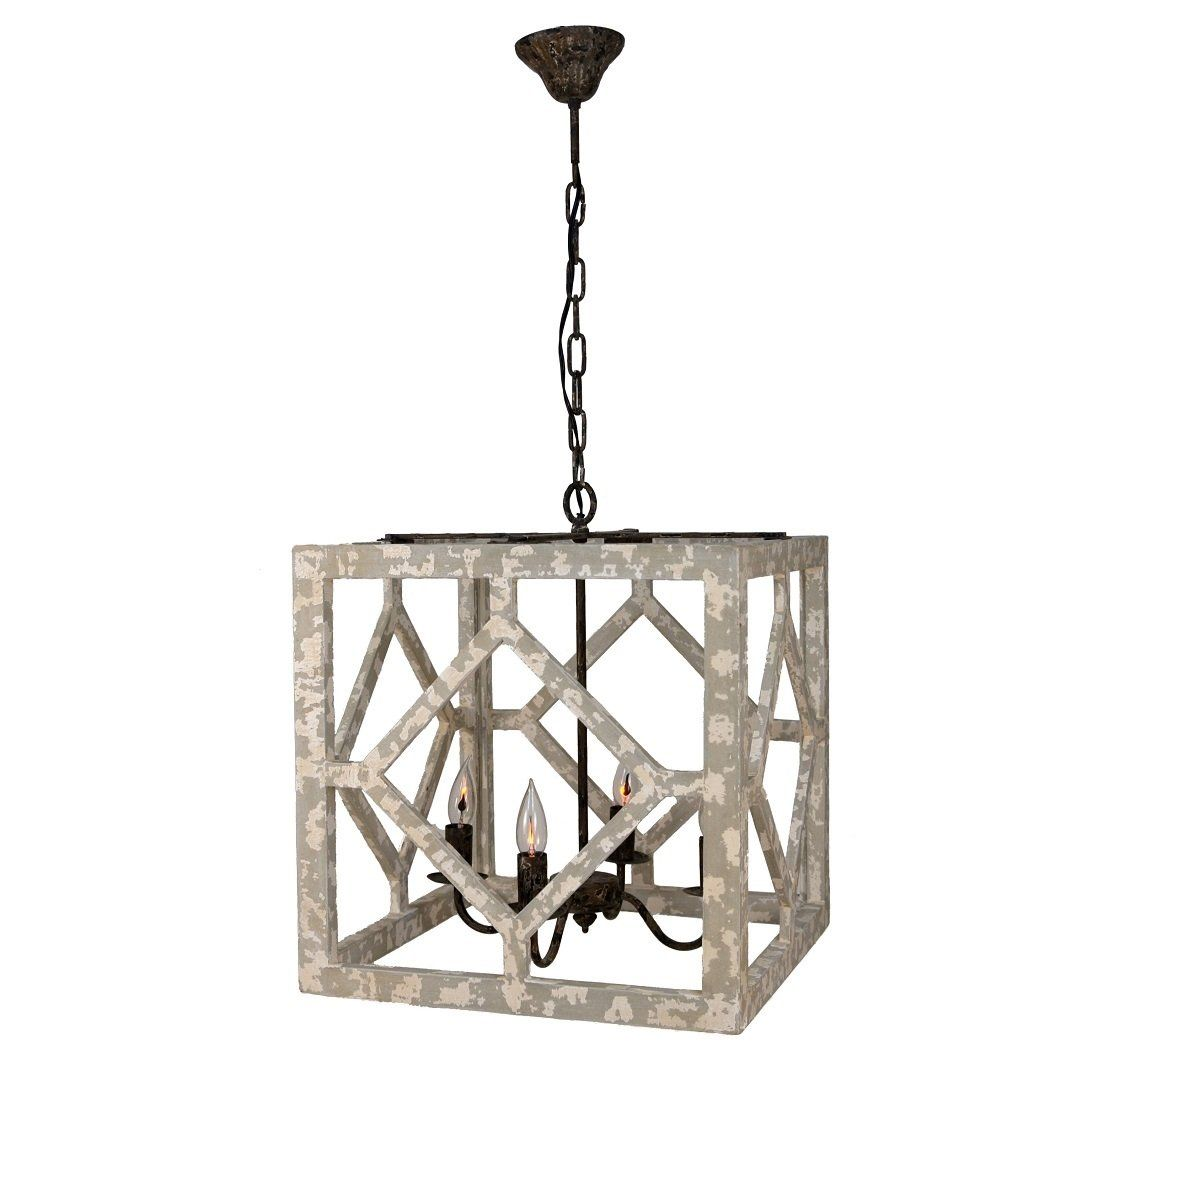 Zurich 4 Light Lantern In 2019 Wooden Lanterns Lantern